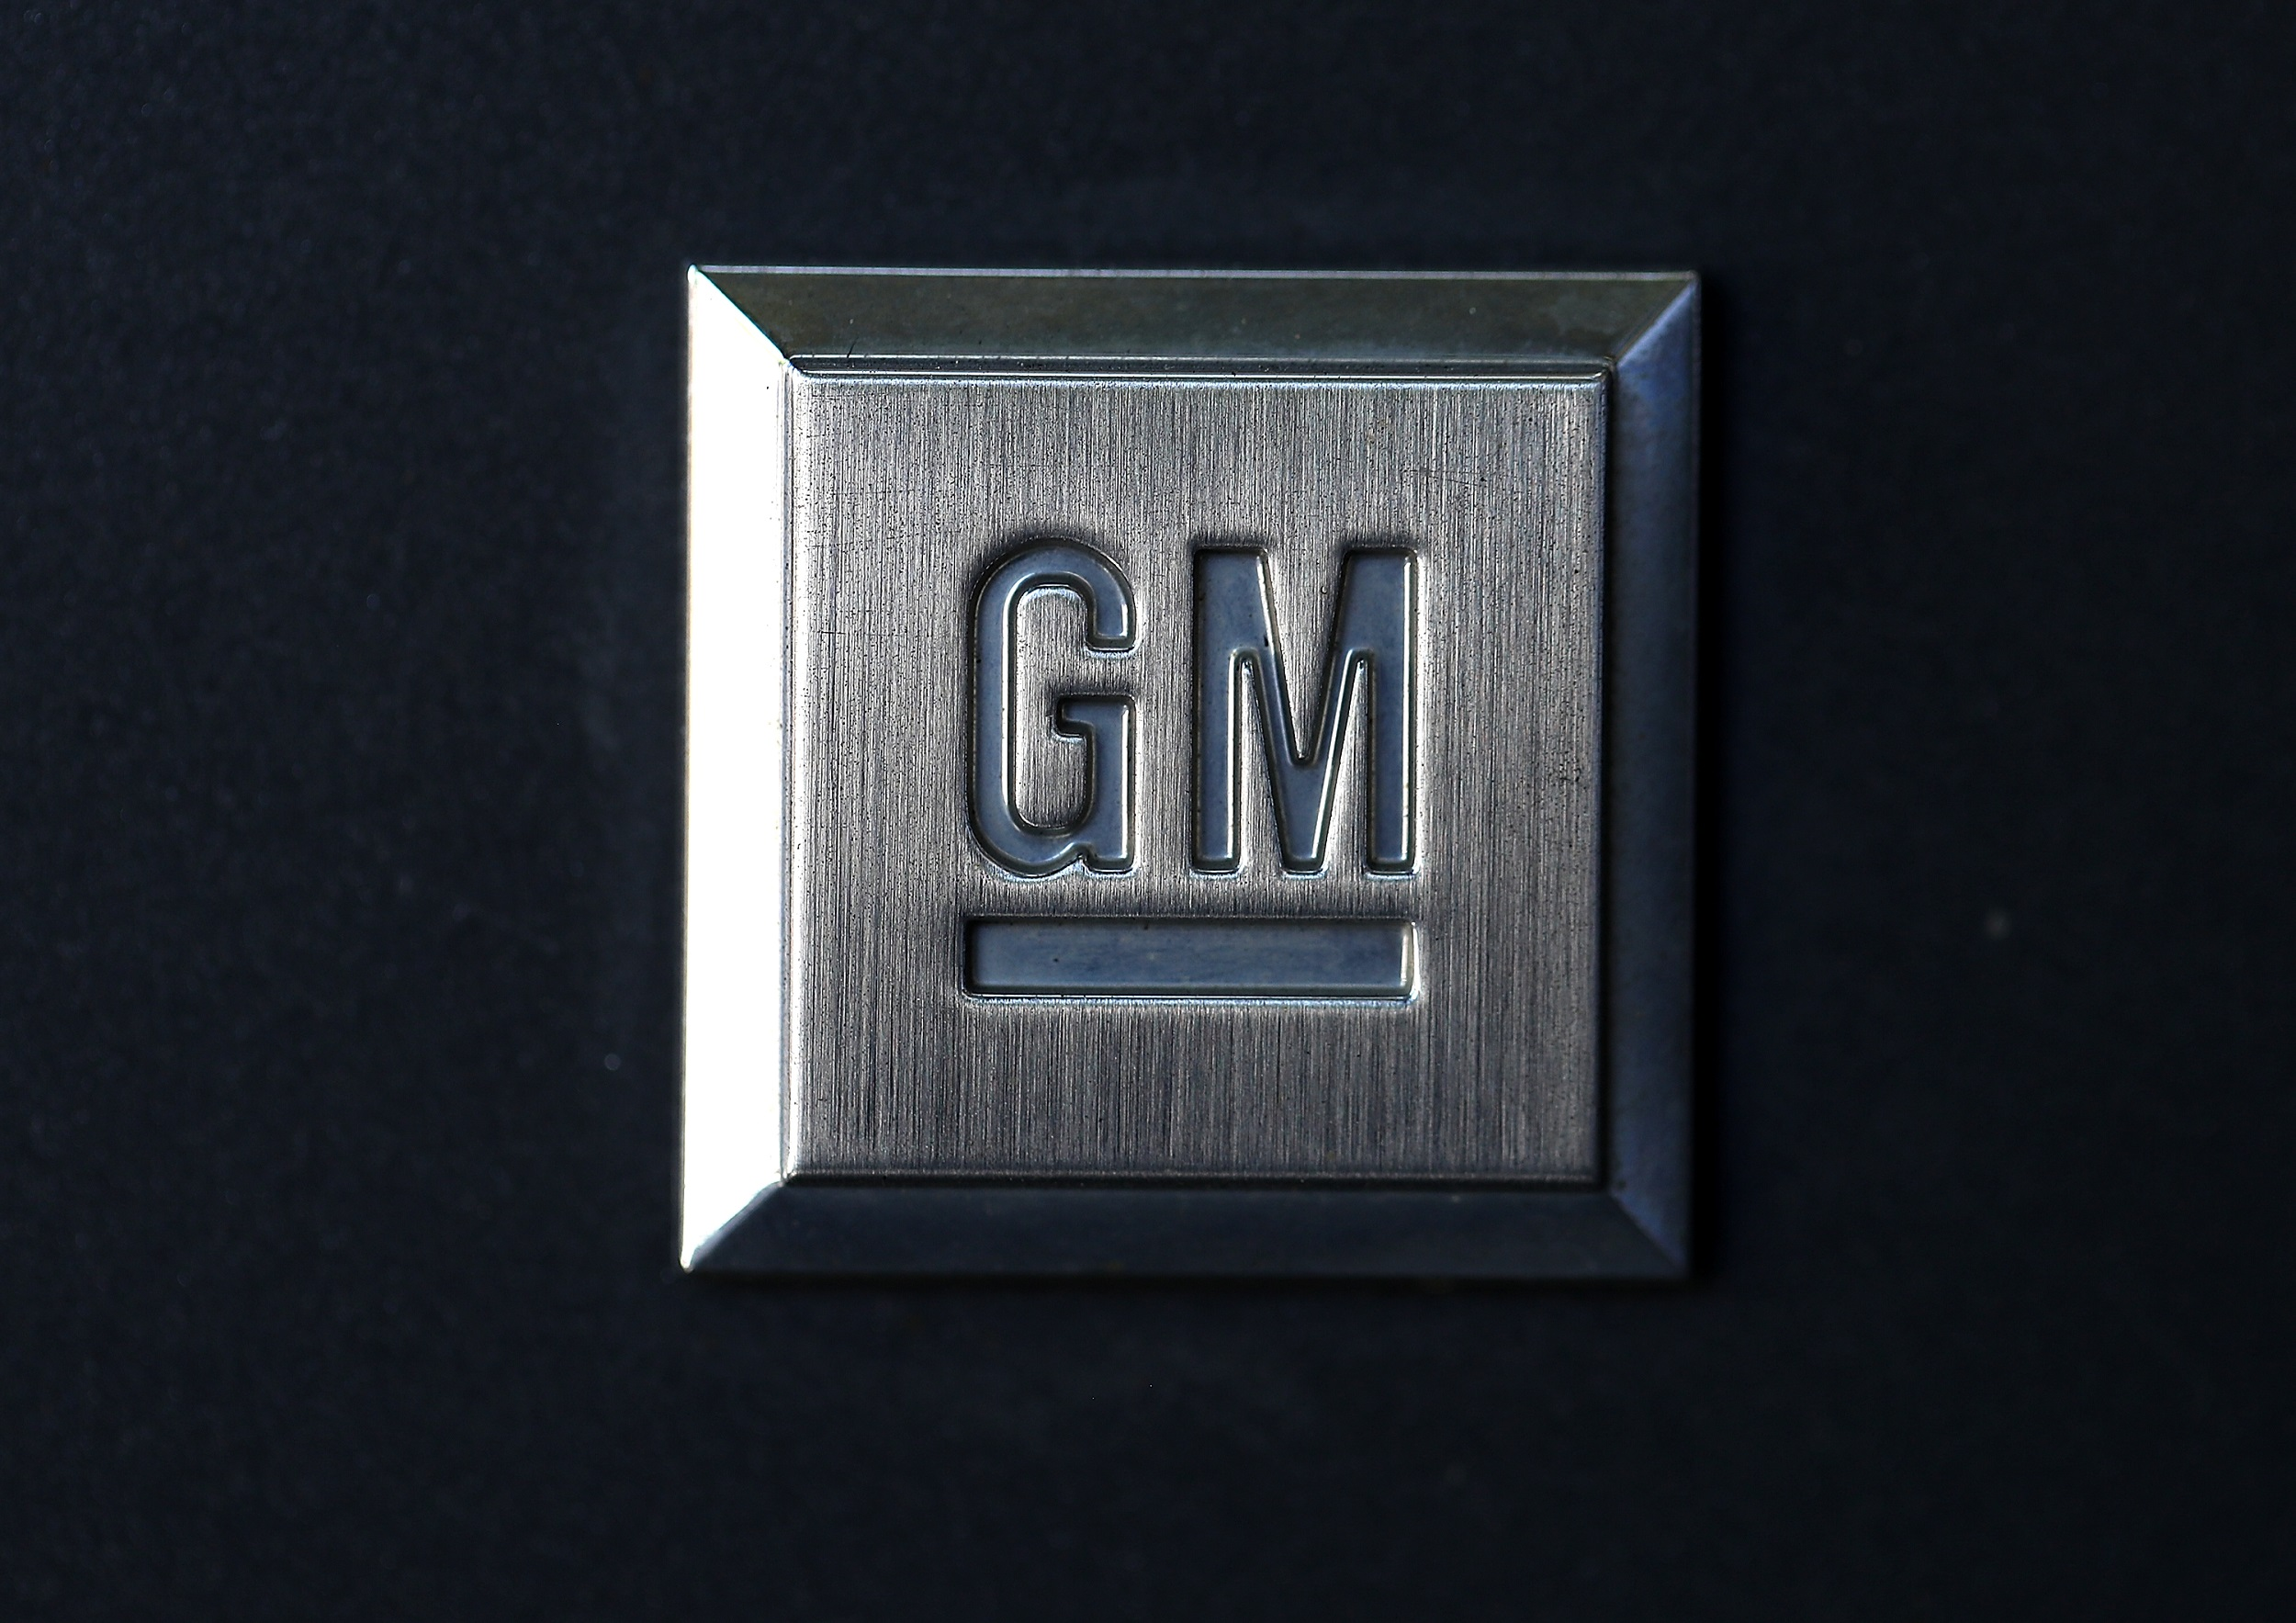 GM had just 26 openings leading up to layoffs; employee sentiment plummeting